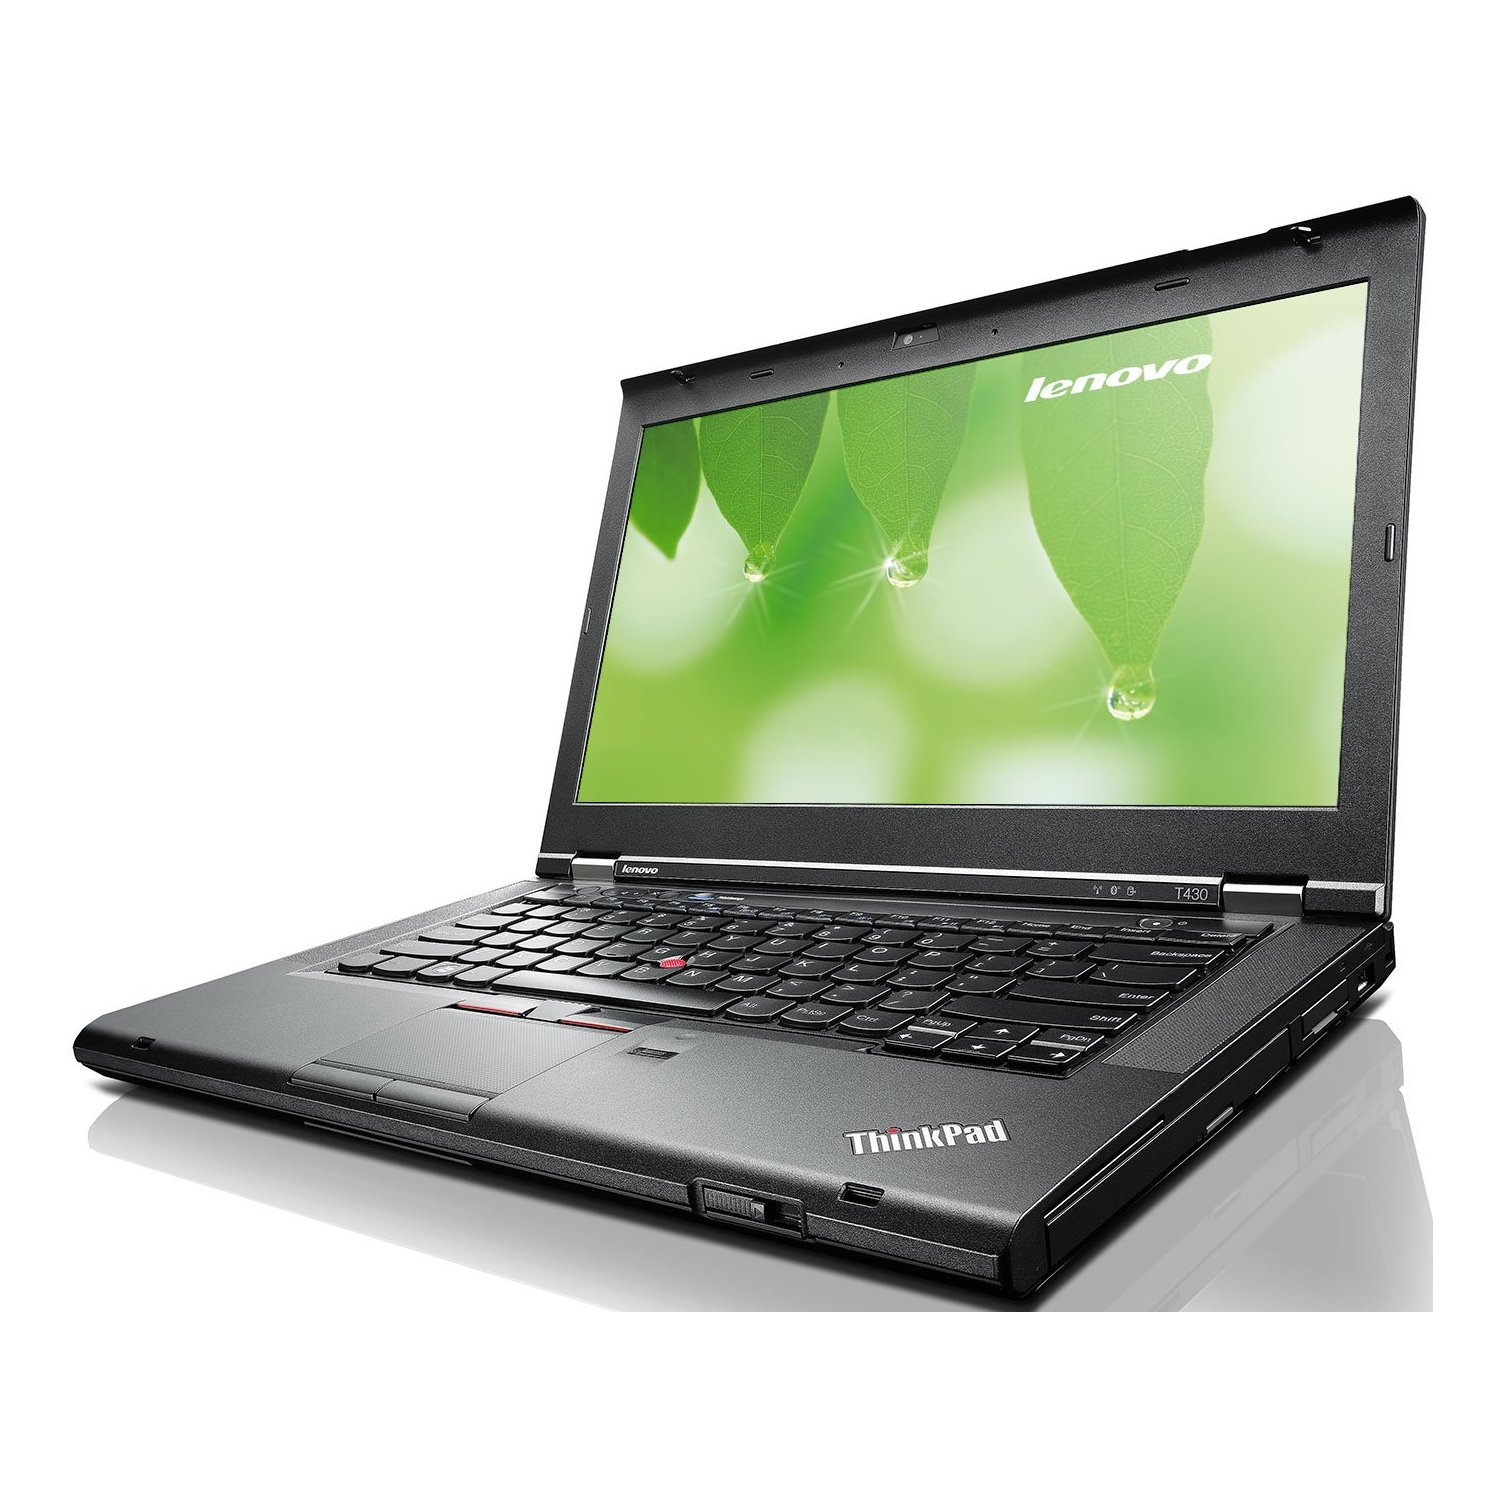 Lenovo Thinkpad T430 Core I7 3520m 6gb 500gb 14 Quot Display